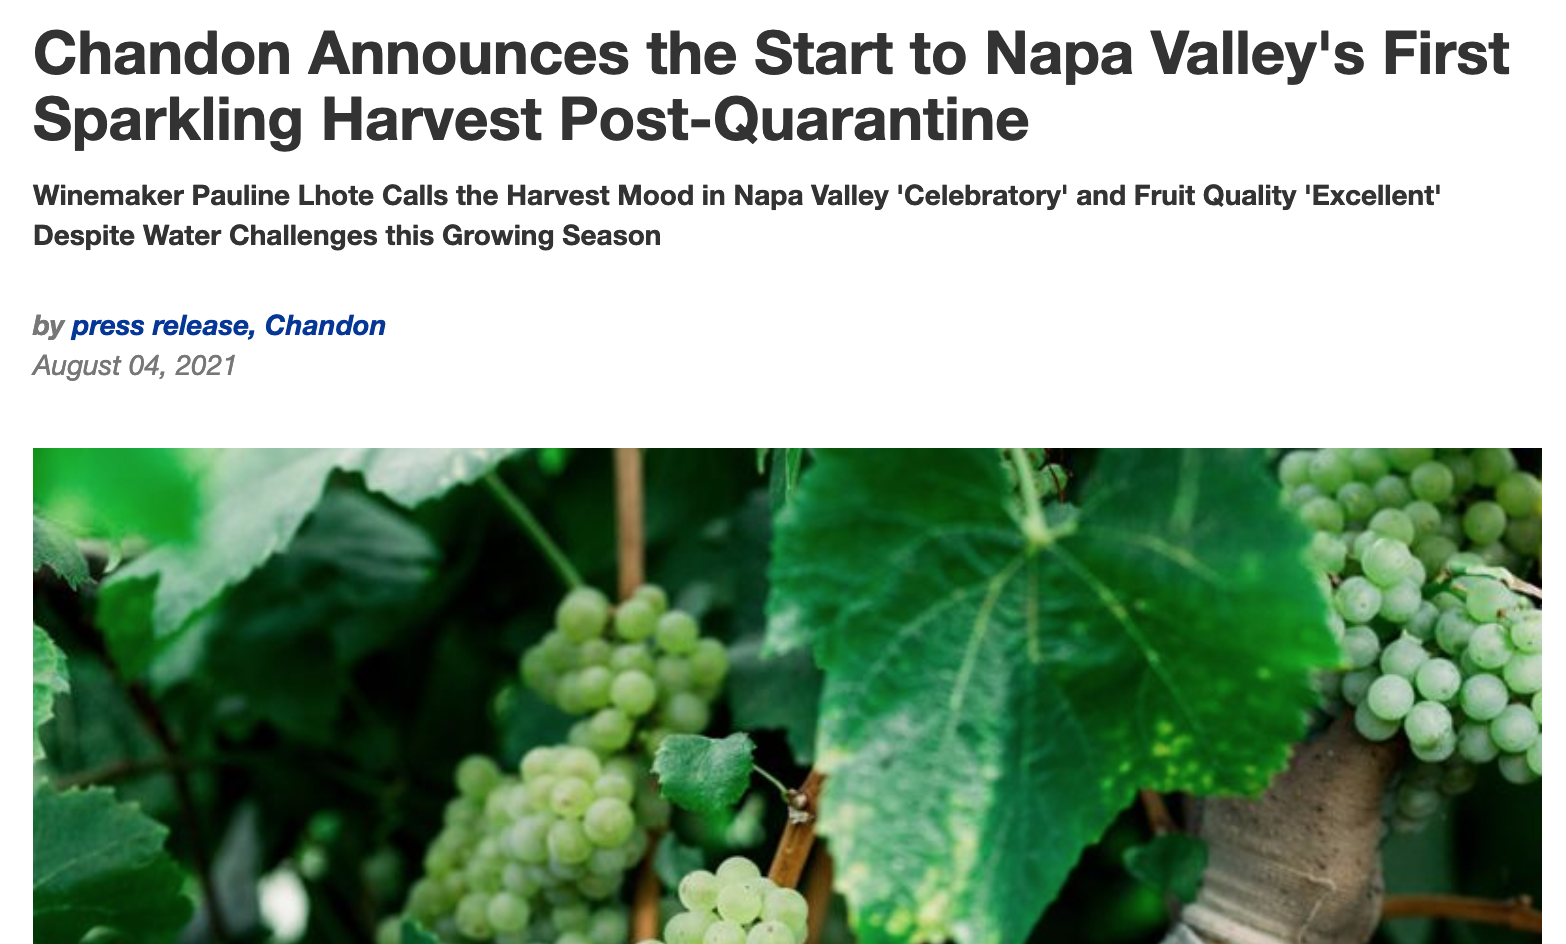 Sparkling Harvest starts for Napa Valley with Chandon